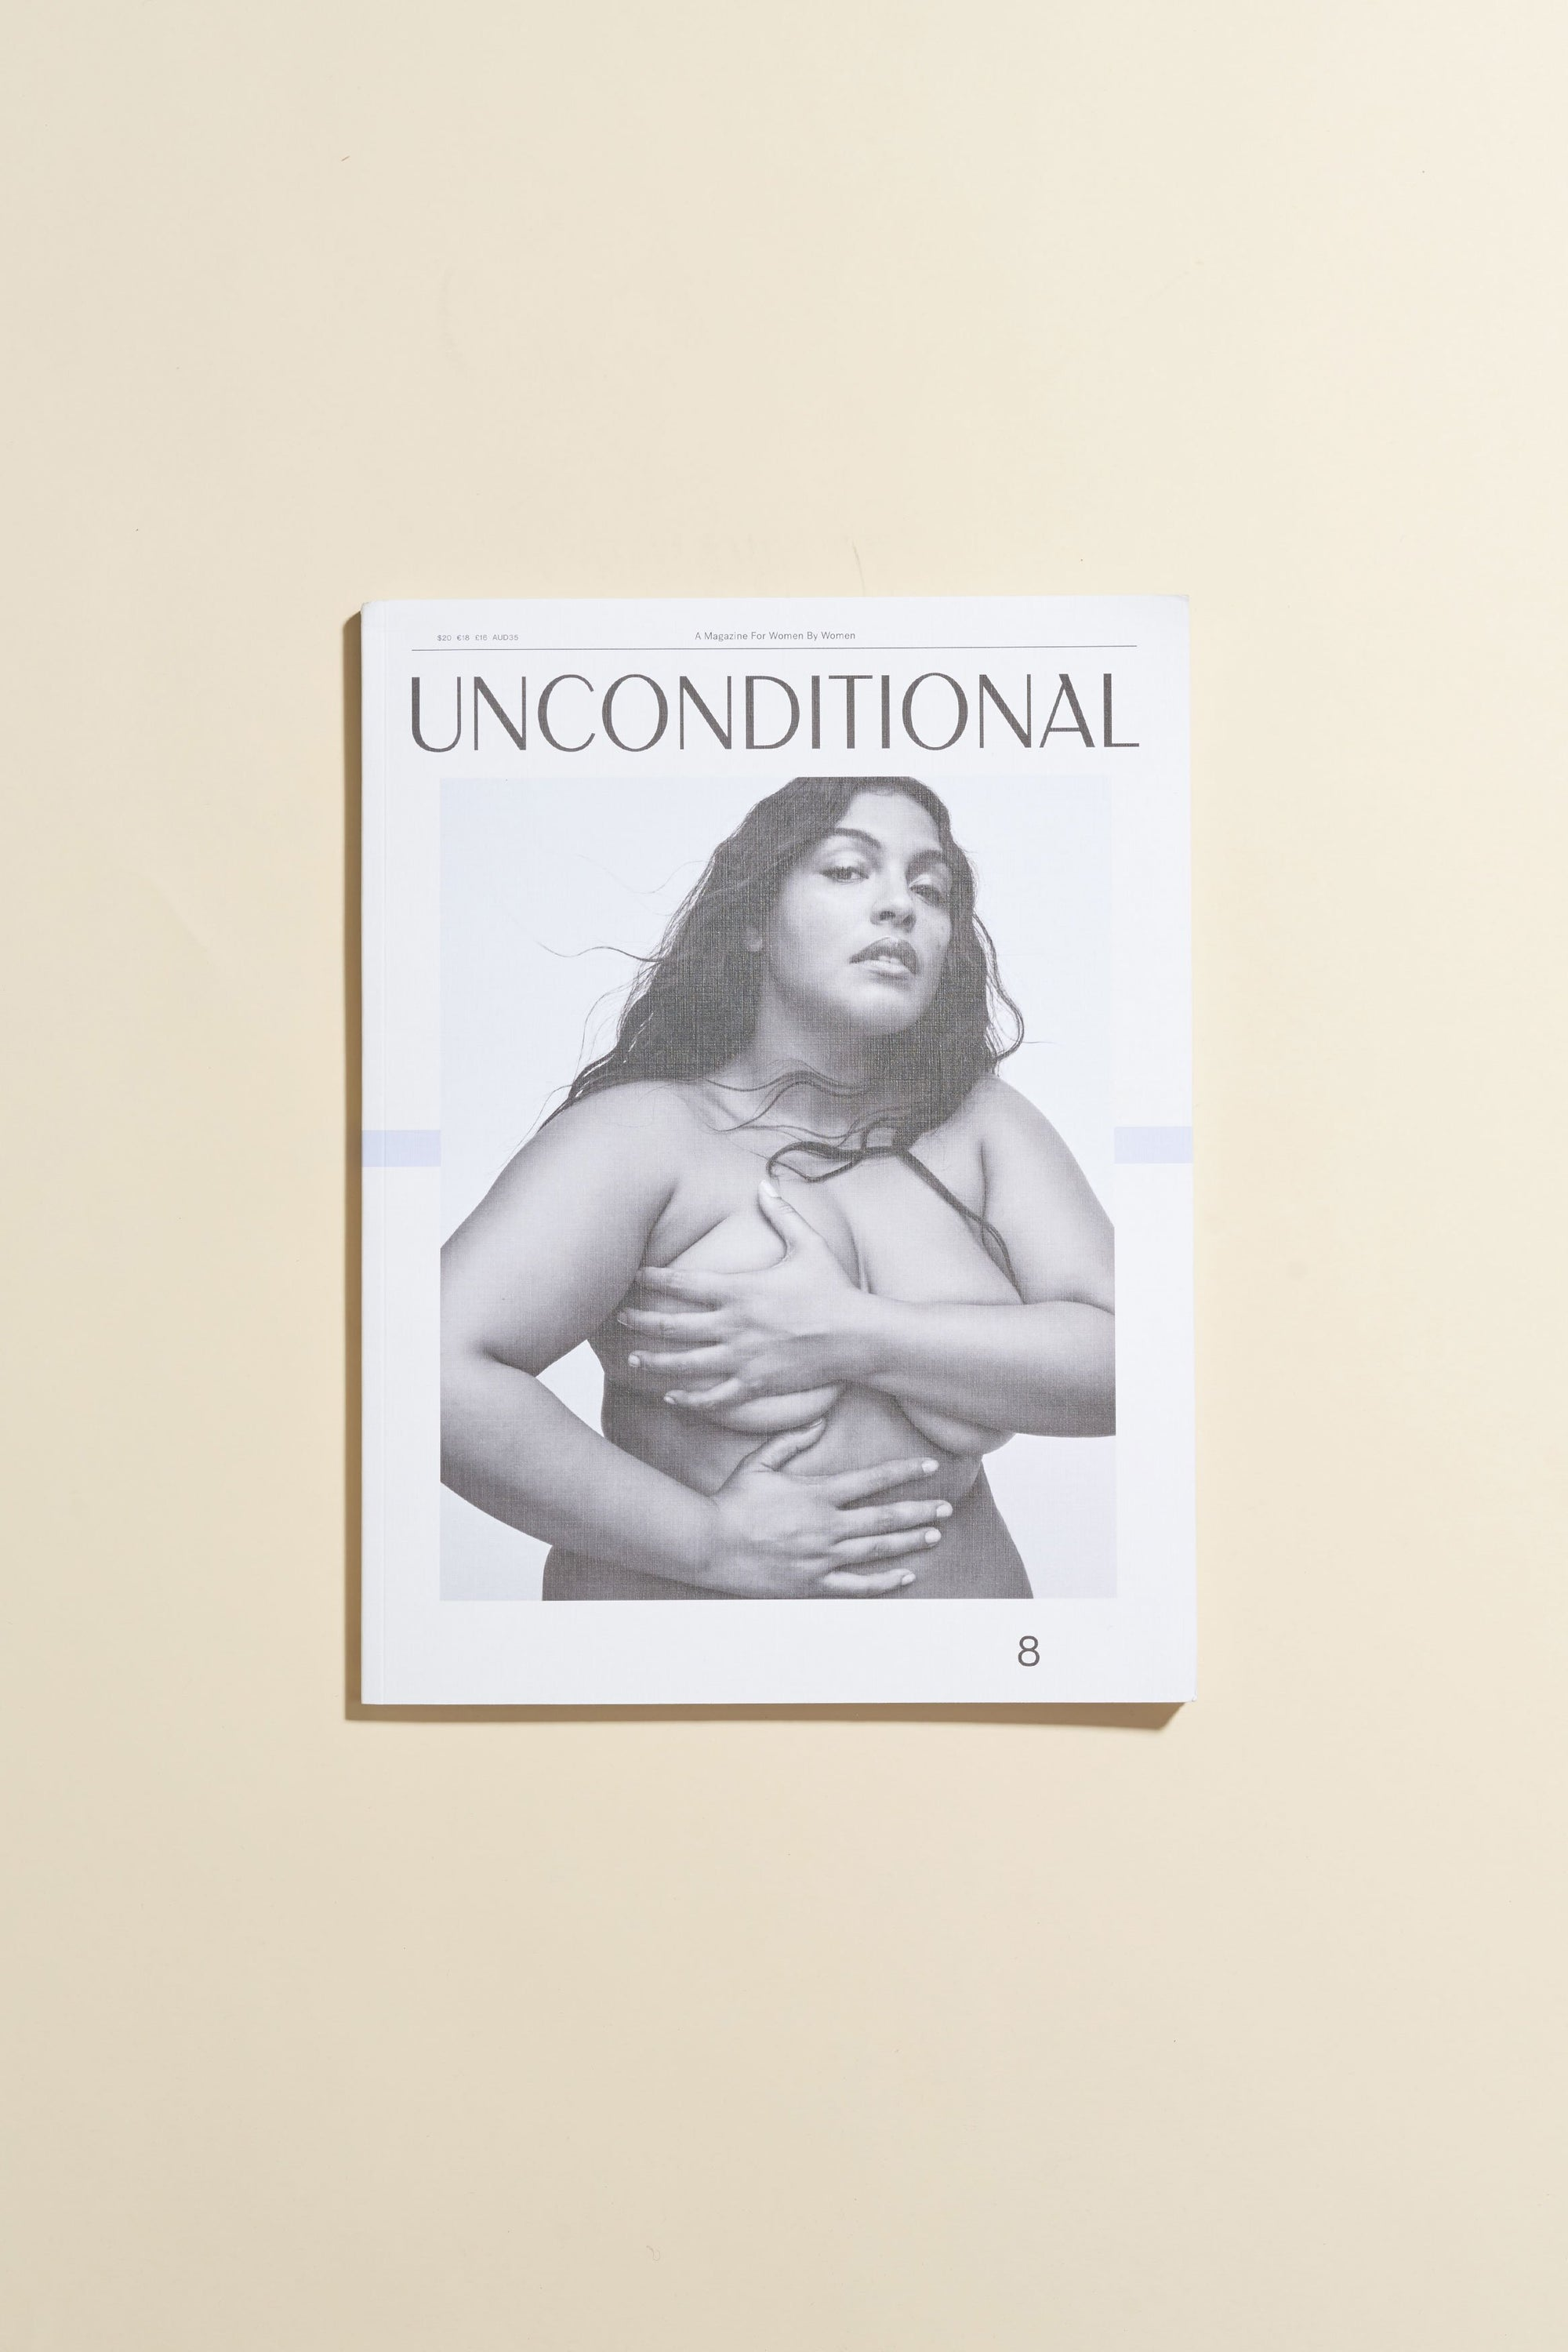 Unconditional Magazine No 8 - The Body Issue